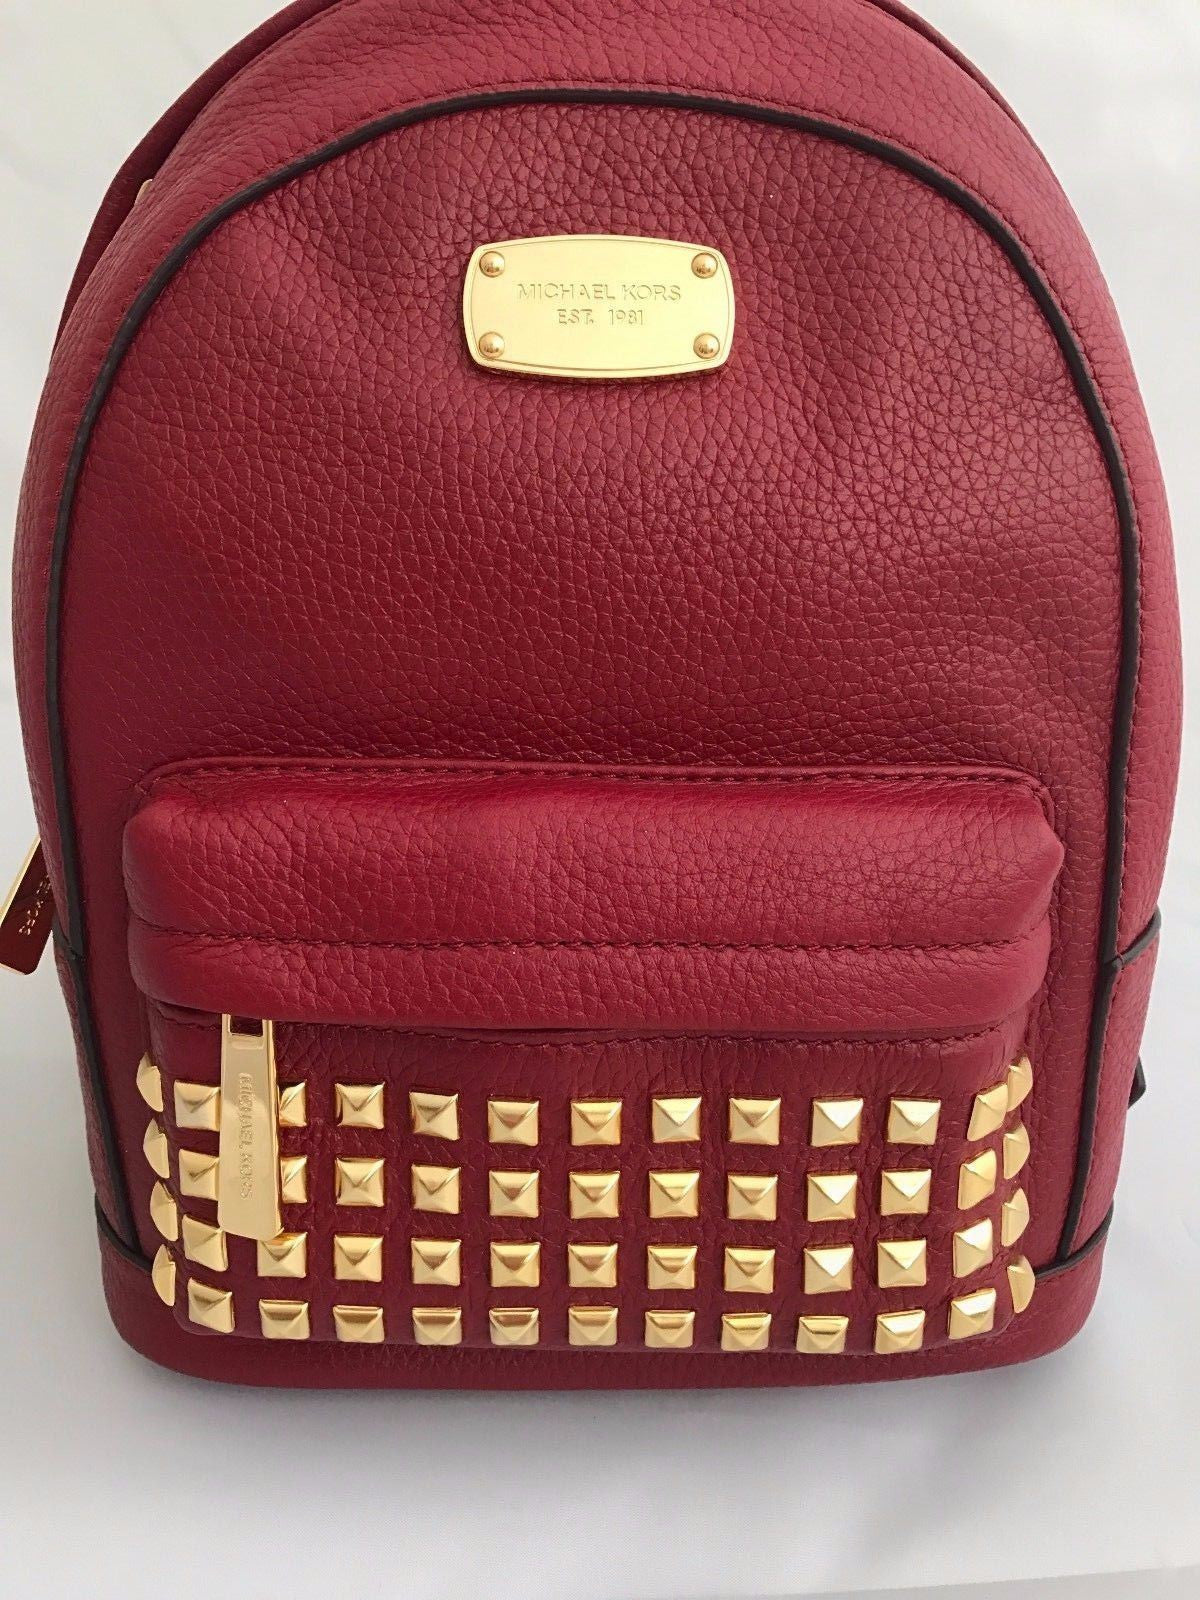 MICHAEL KORS Cherry XS Gold Studded Backpack Leather NWT Retail $328 35H6GTTB5L - BAYSUPERSTORE